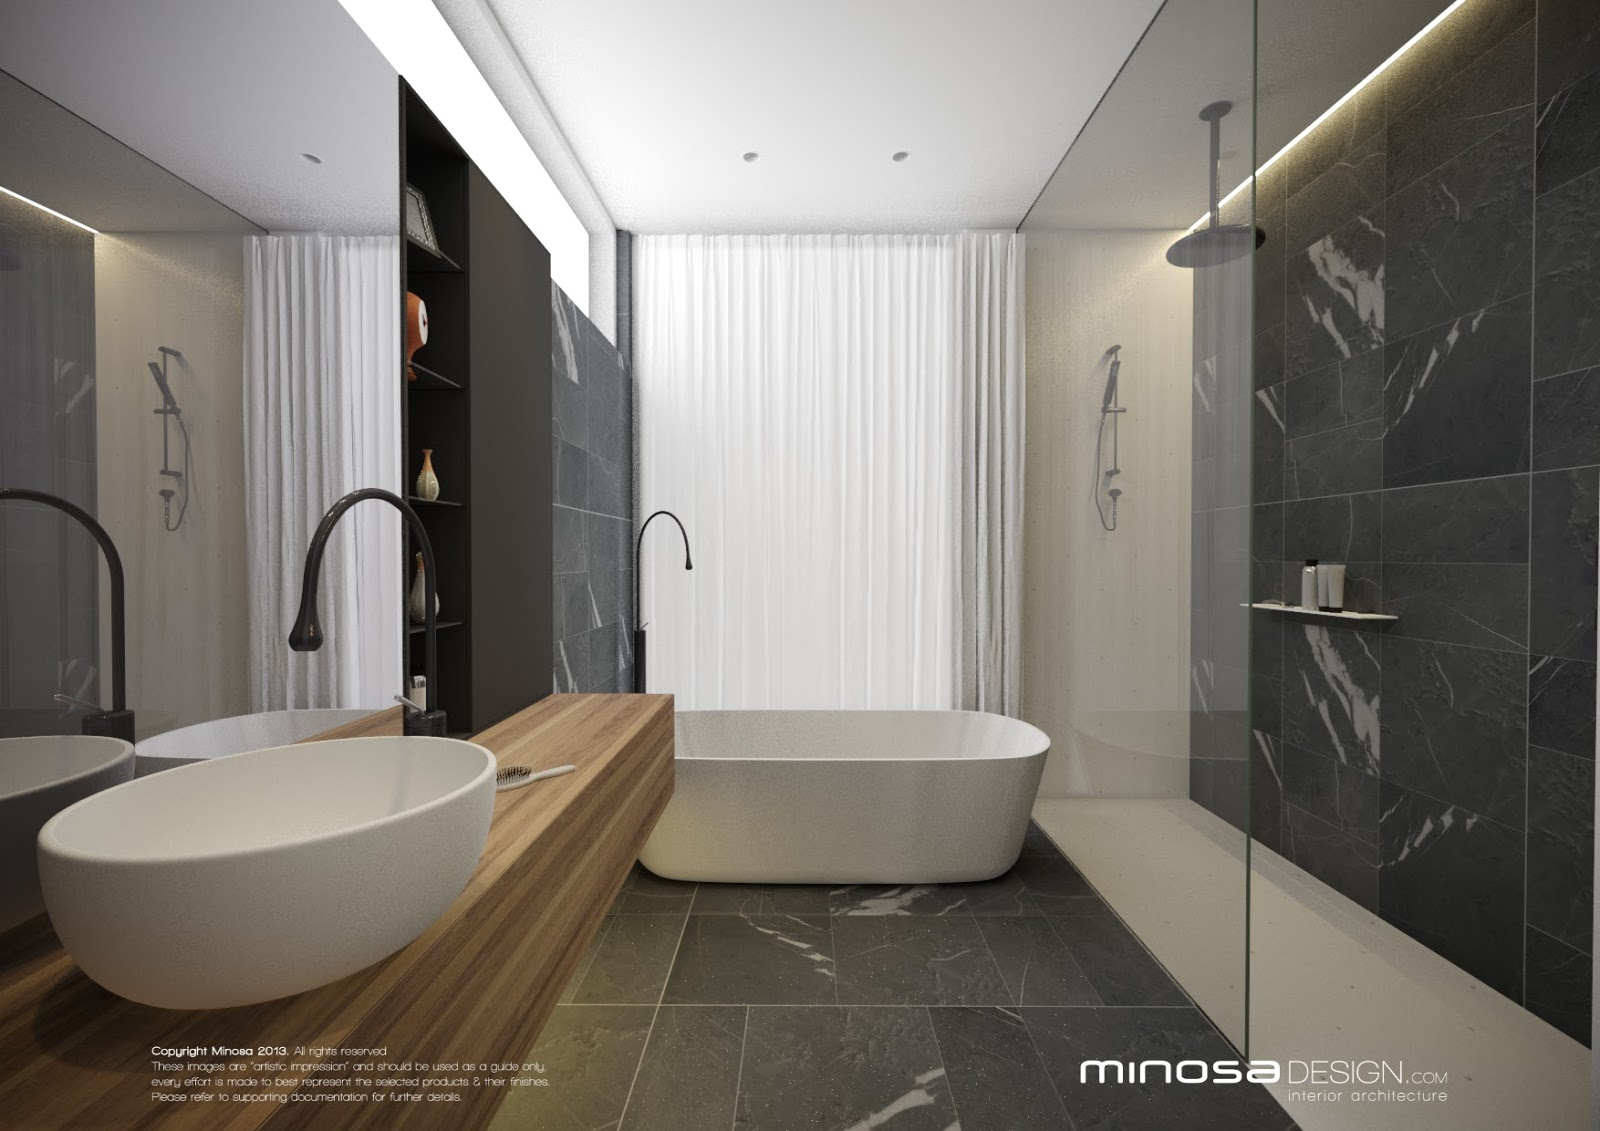 Minosa modern bathroom design to share for New bathroom design